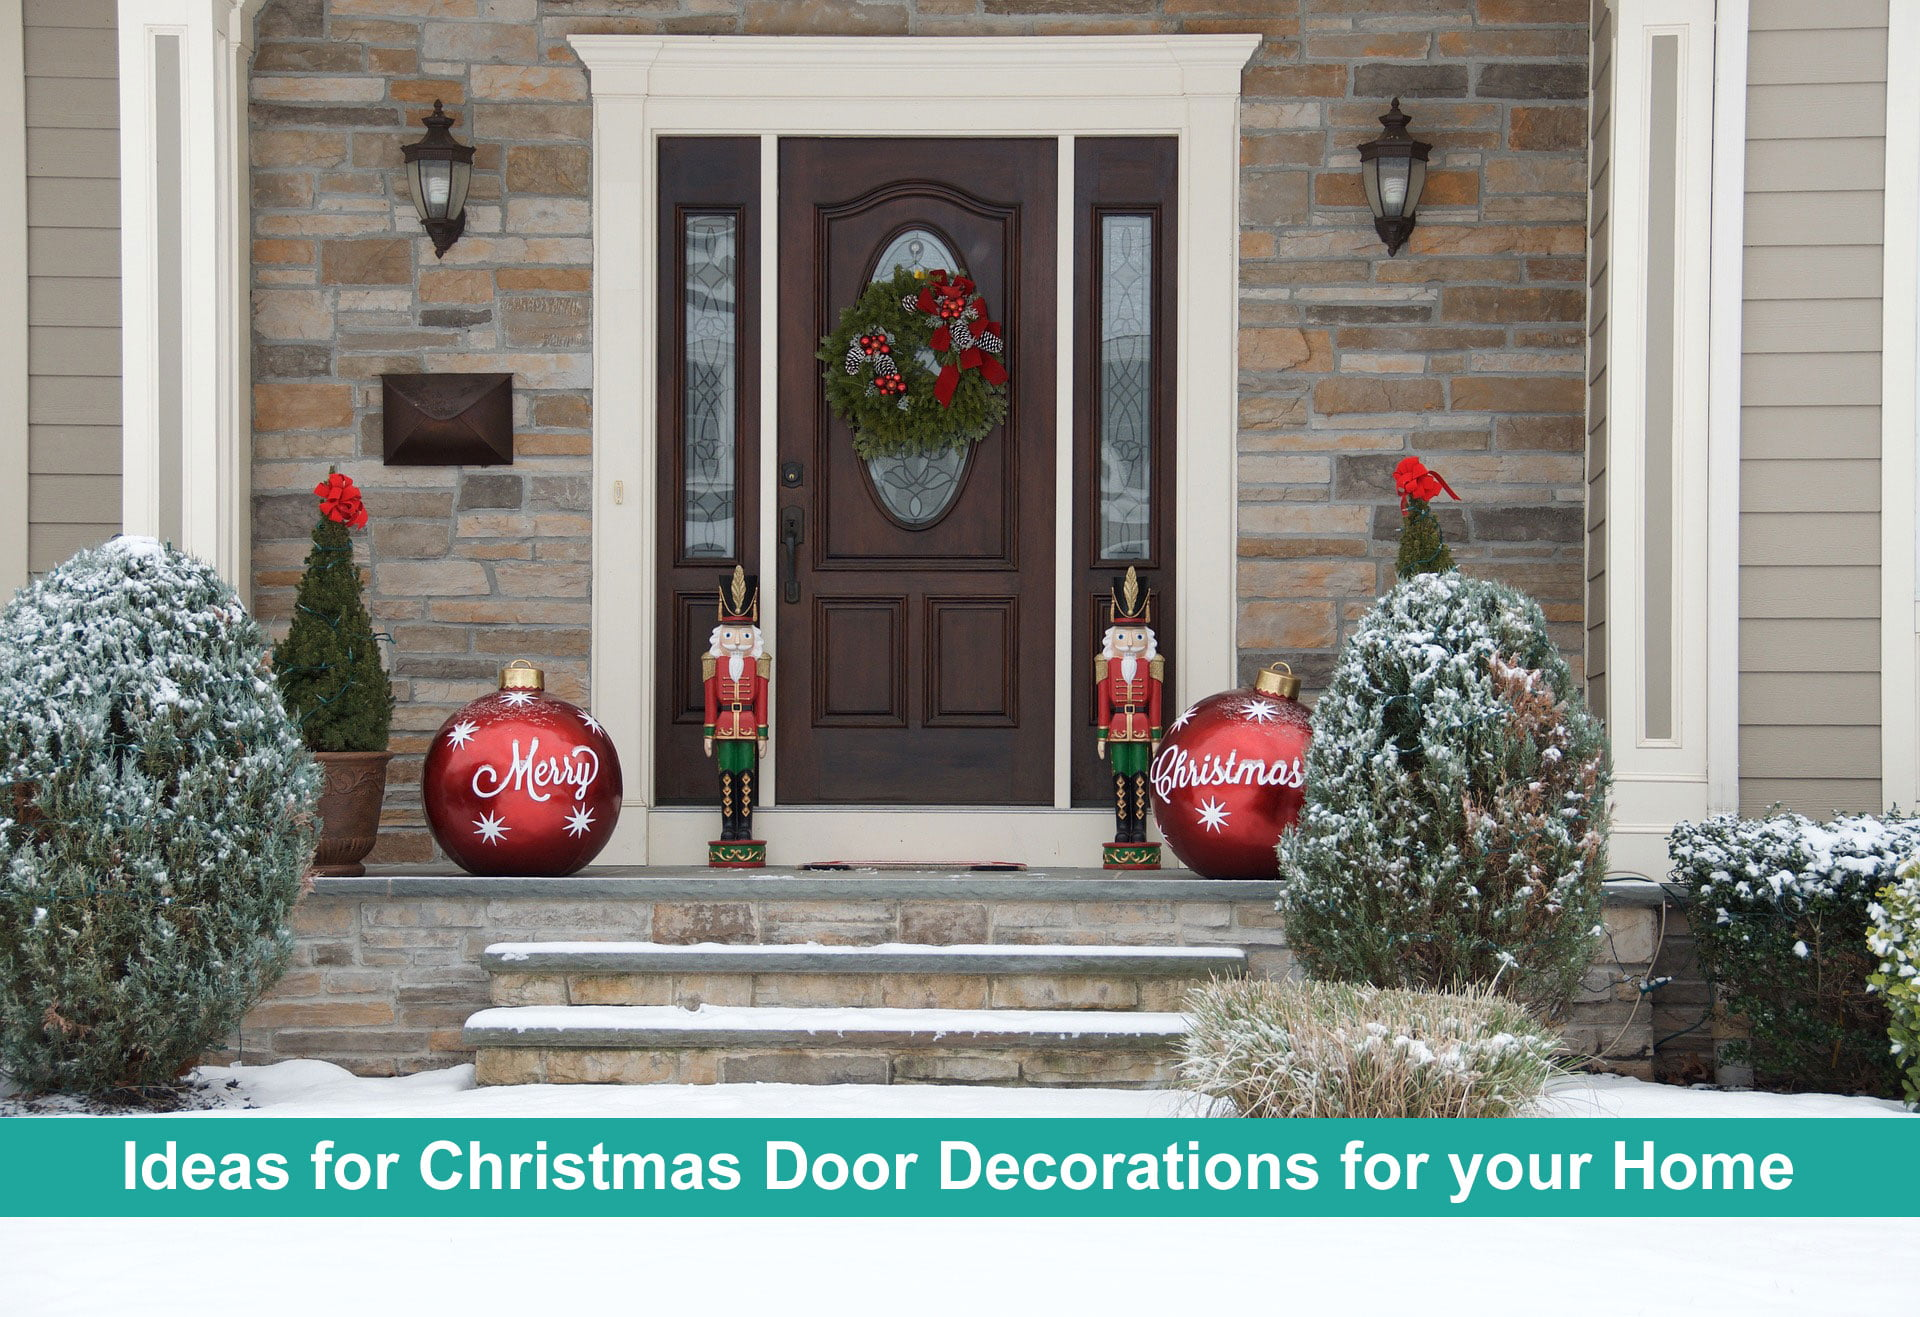 Ideas for Christmas Door Decorations for your Home